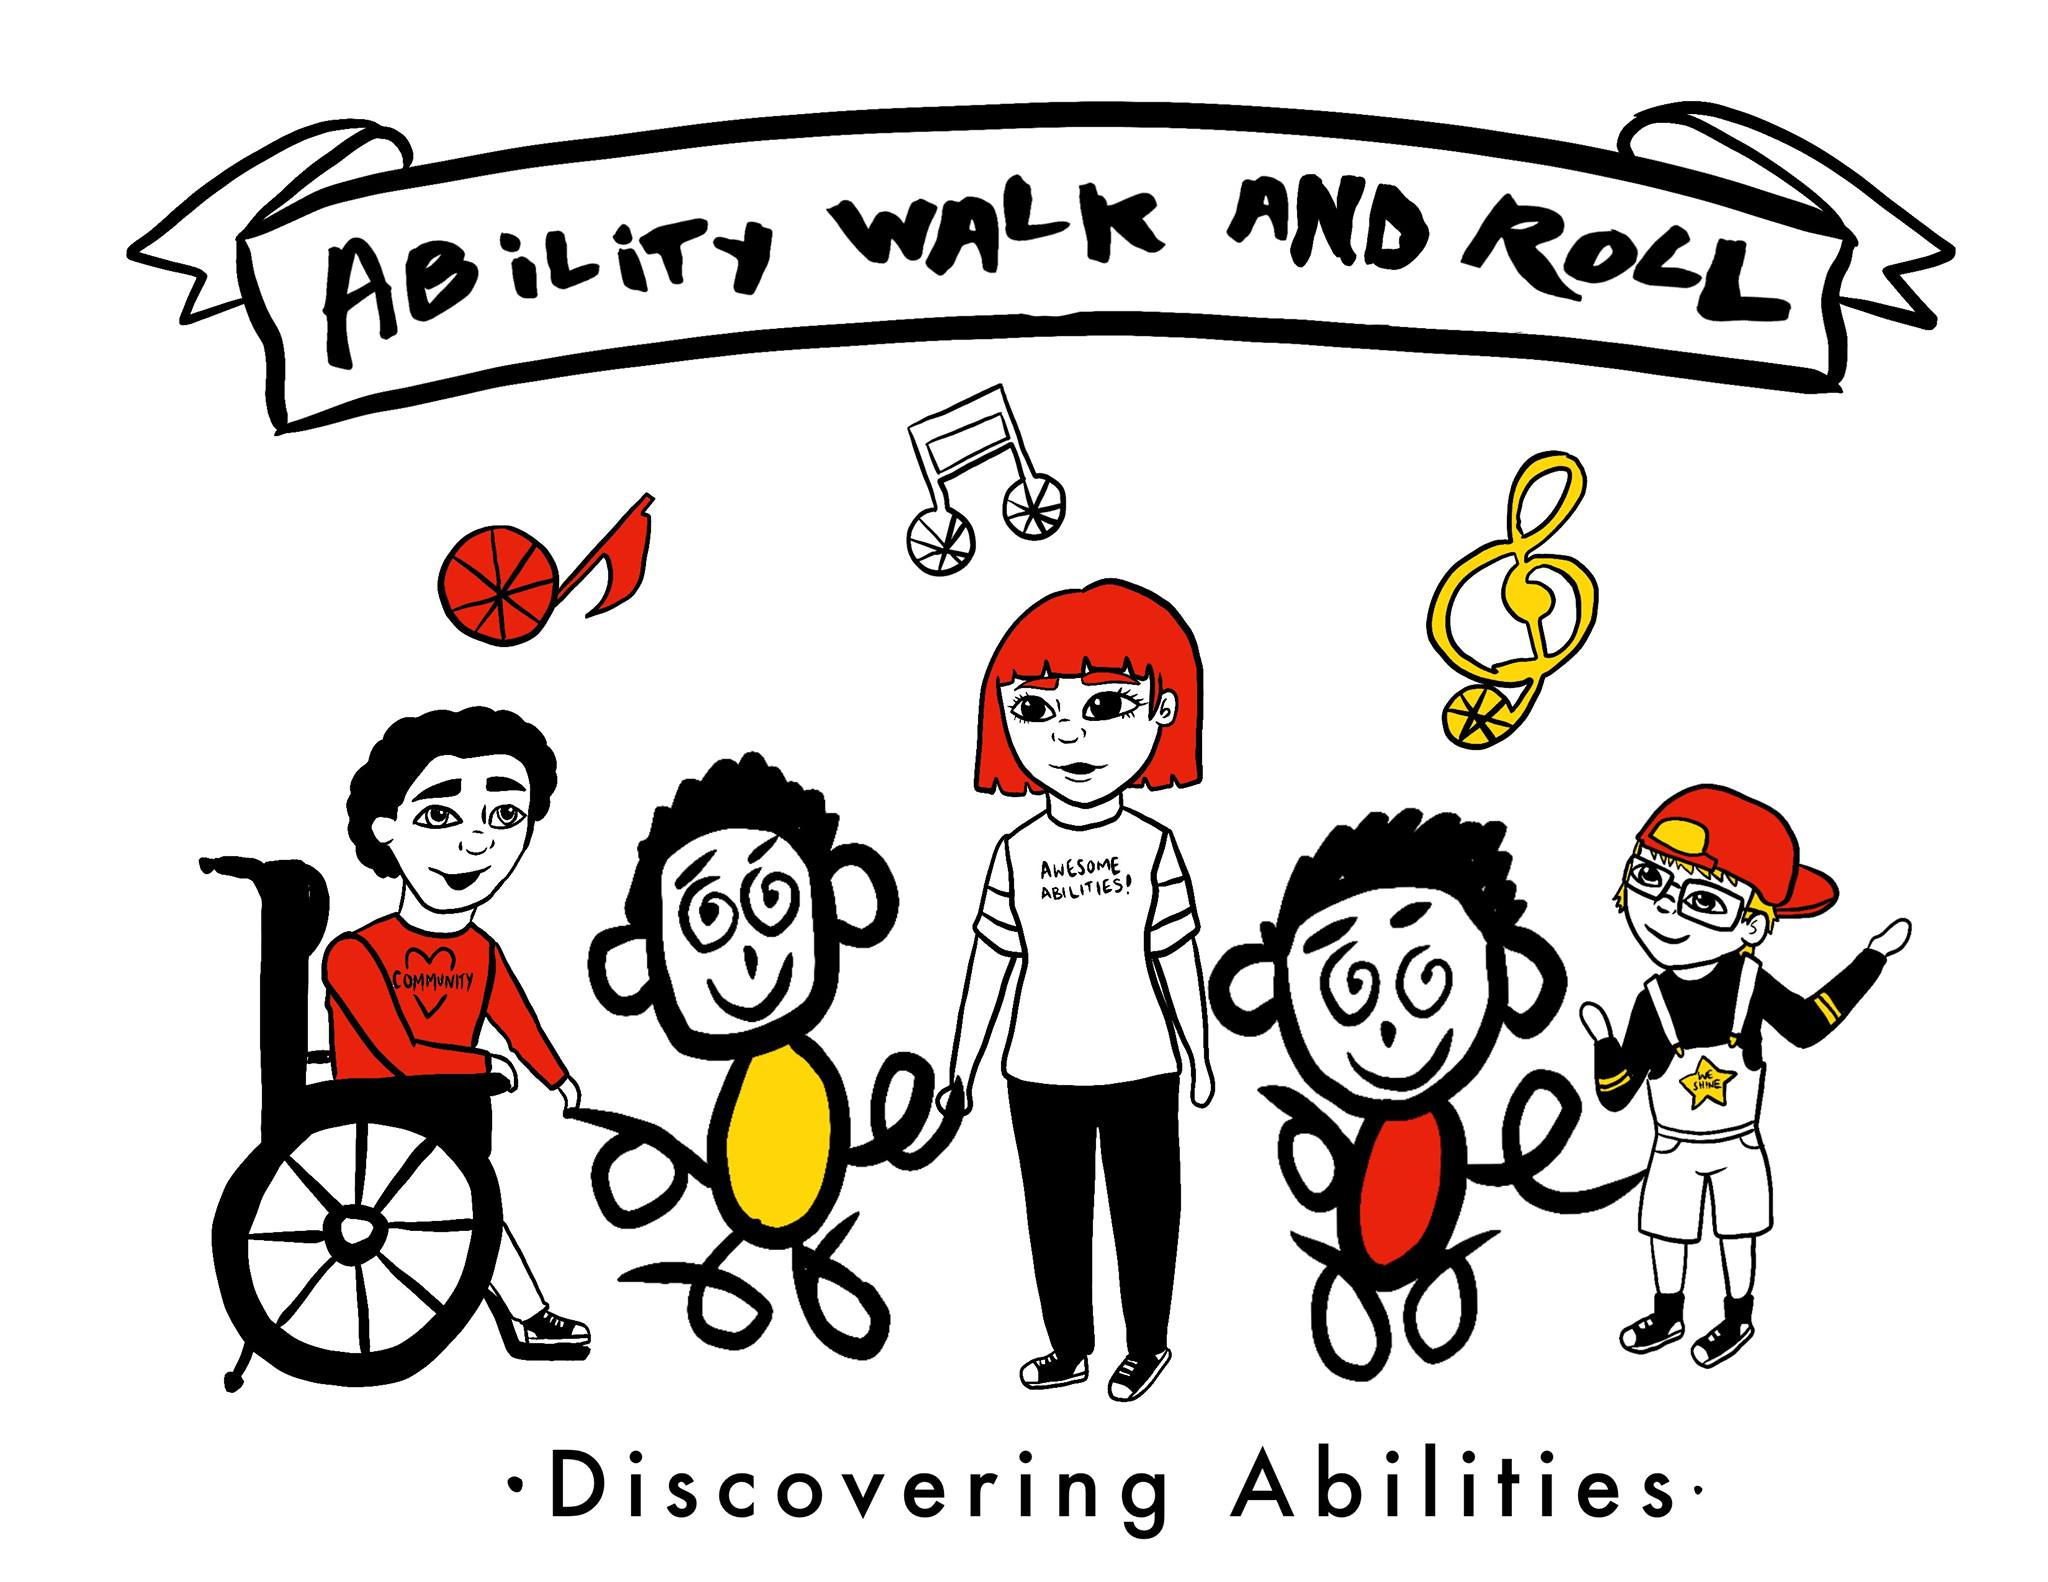 Ability walk and roll poster